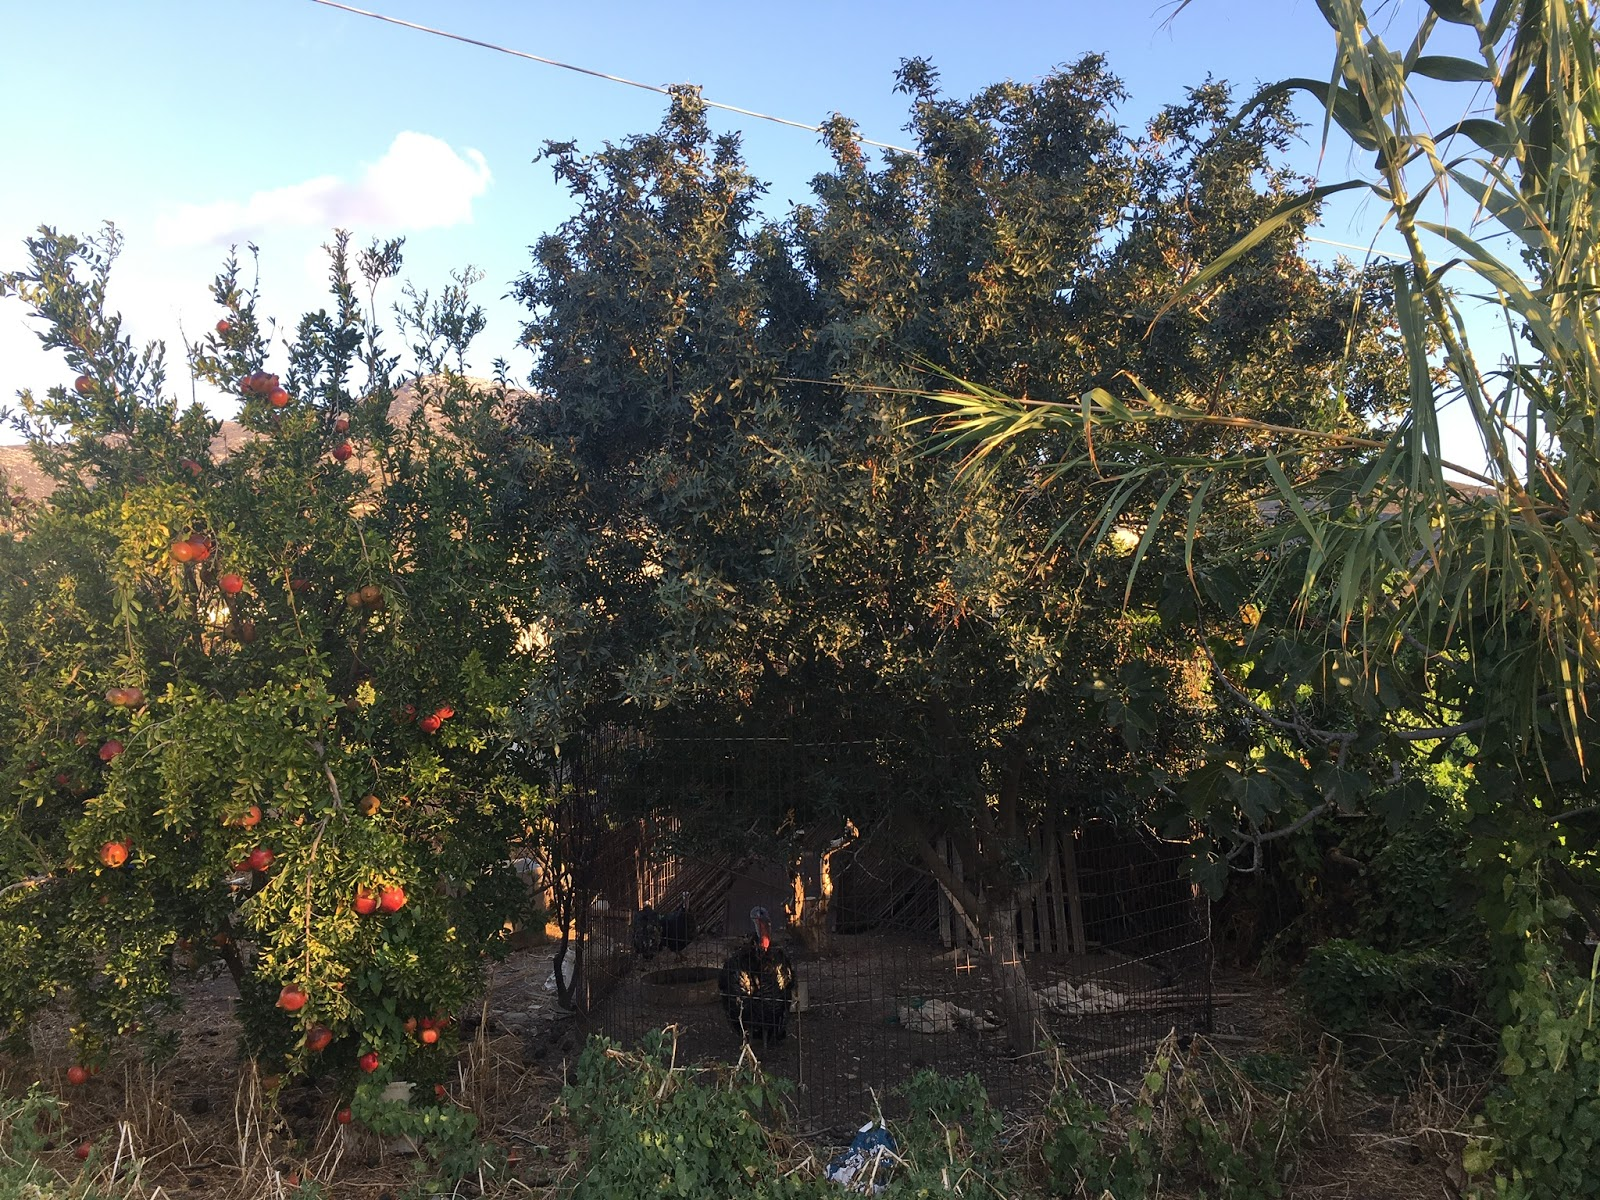 to see where it would lead us we ended up in a little backyard farm with pomegranate and olive trees roosters rabbits goats and of course chickens